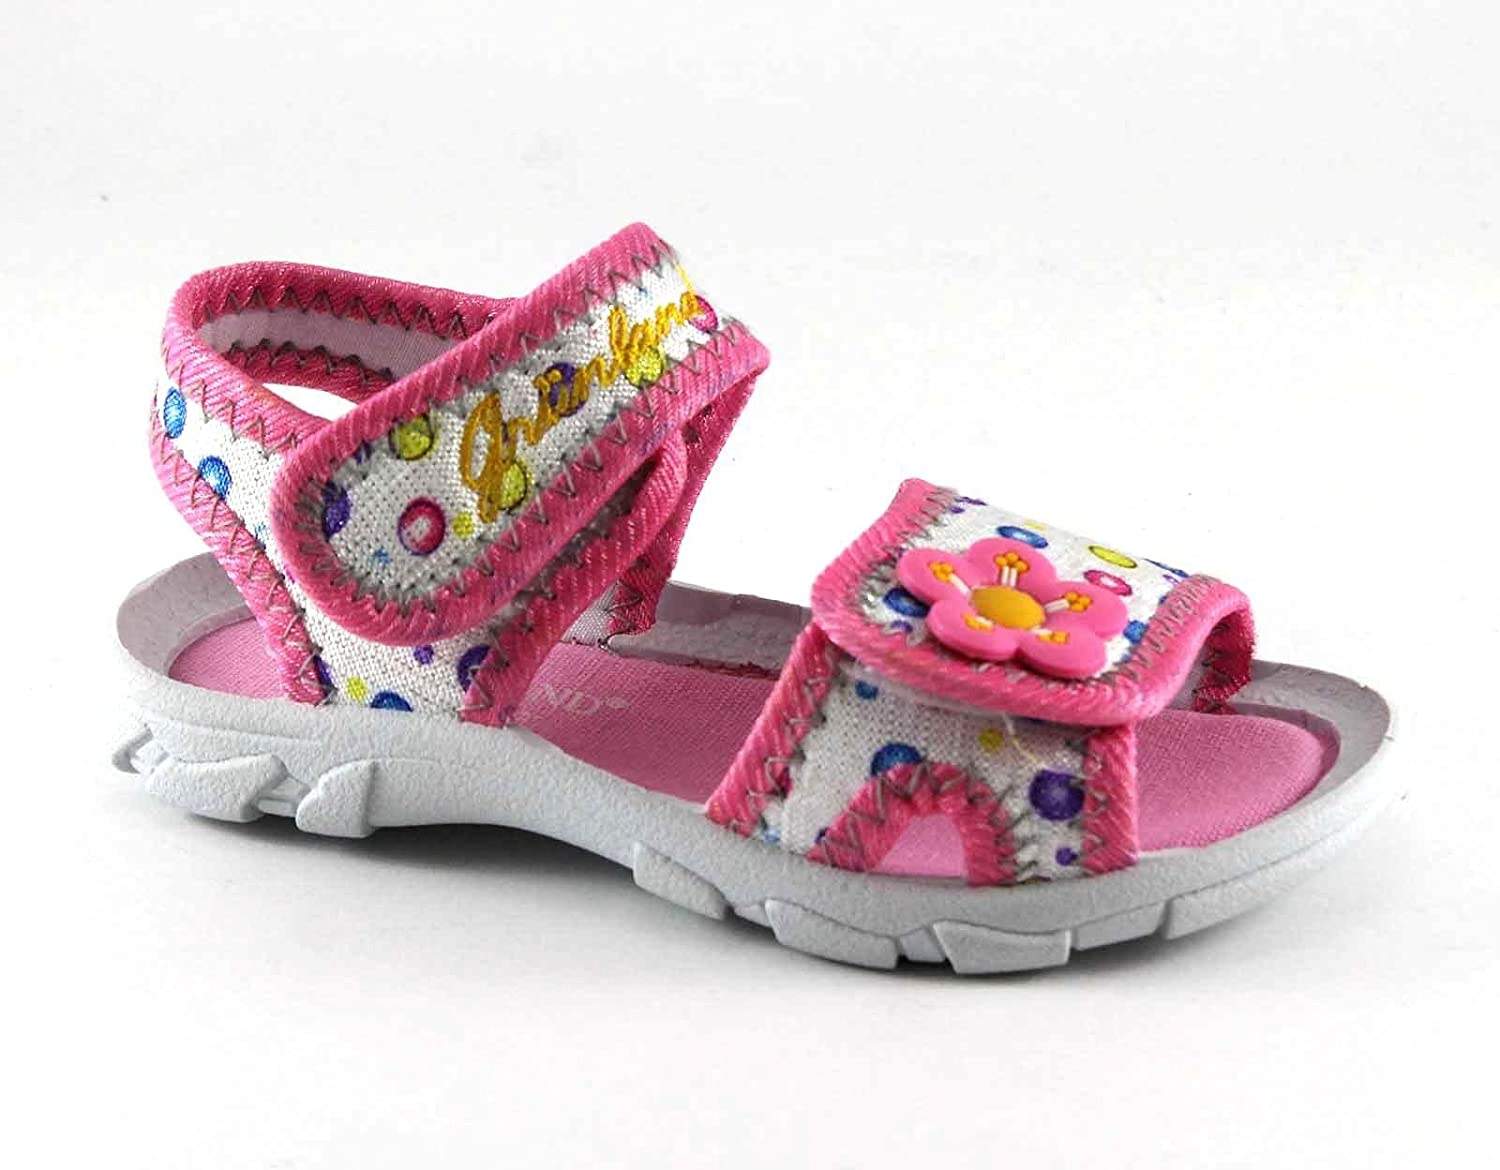 Grunland GRÜNLAND Flin PP0131 Multi Pink White Baby Sandals Tear Resistant  Fabric 21  Amazon.co.uk  Shoes   Bags